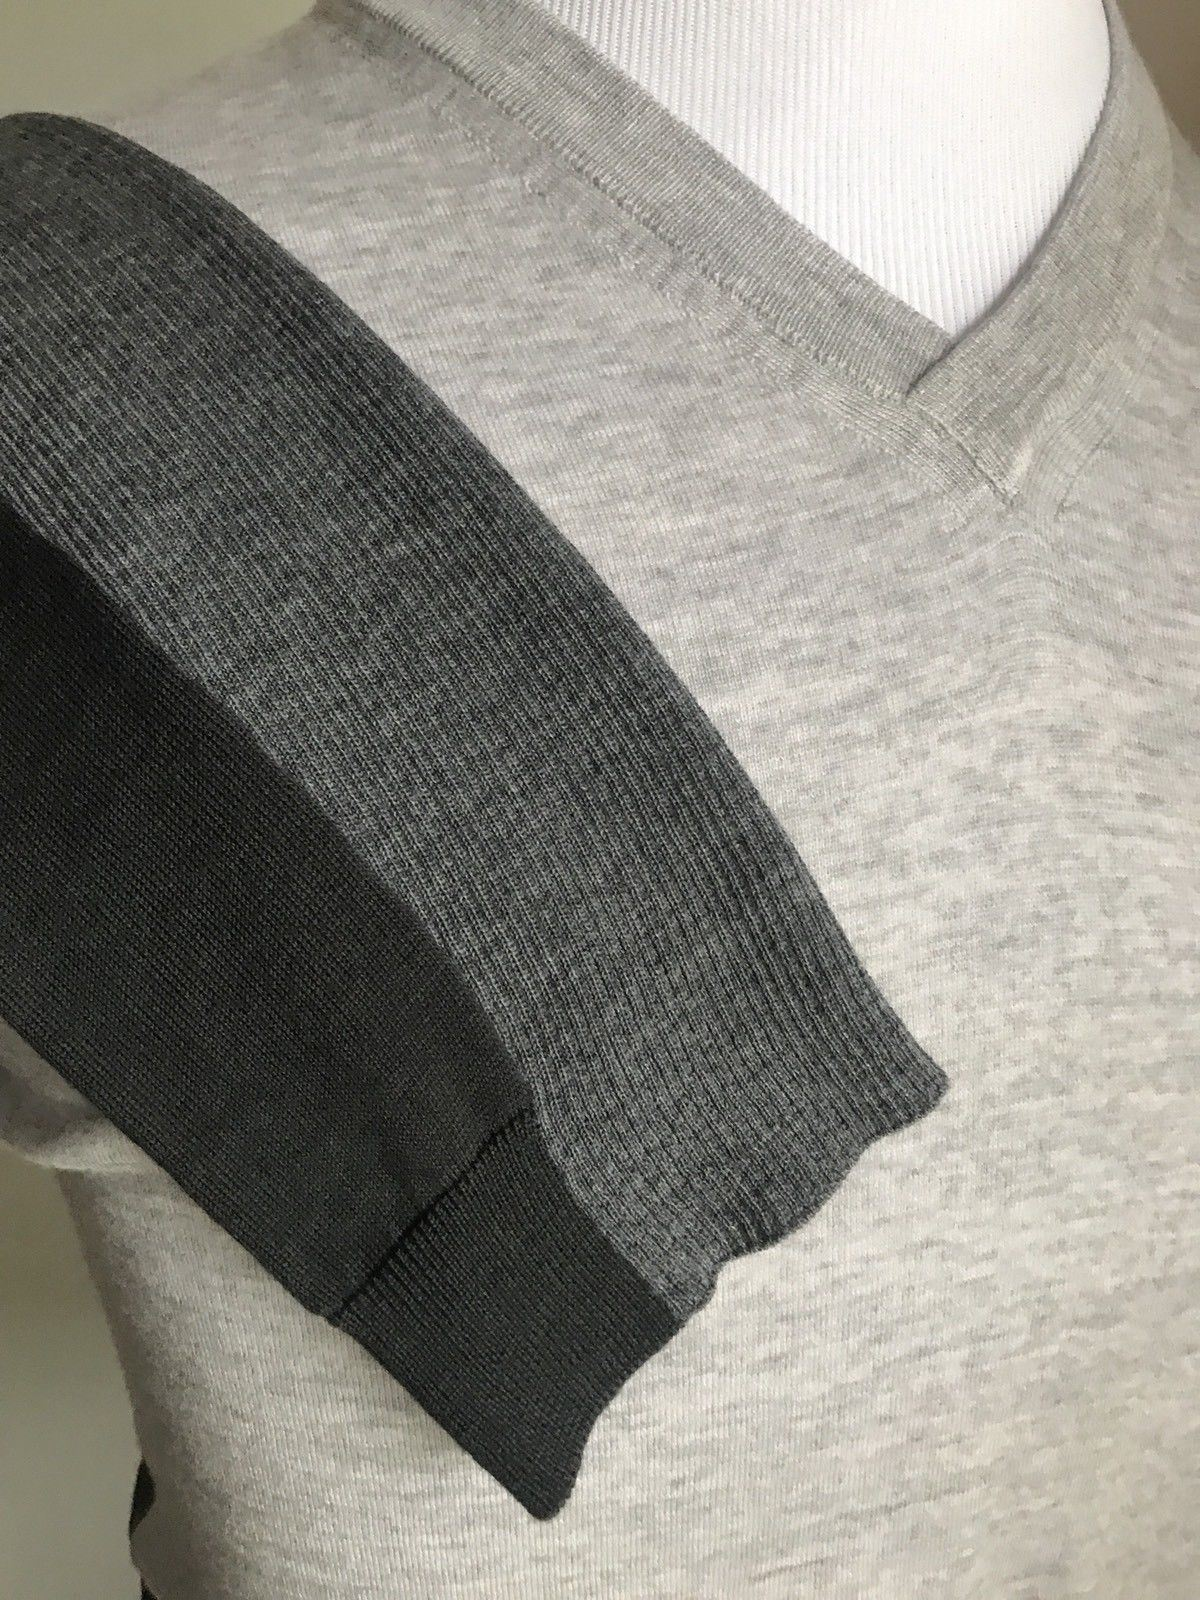 New $1395 Giorgio Armani Men Wool V-Neck Sweater Gray L US ( 52 Eu ) Italy - BAYSUPERSTORE